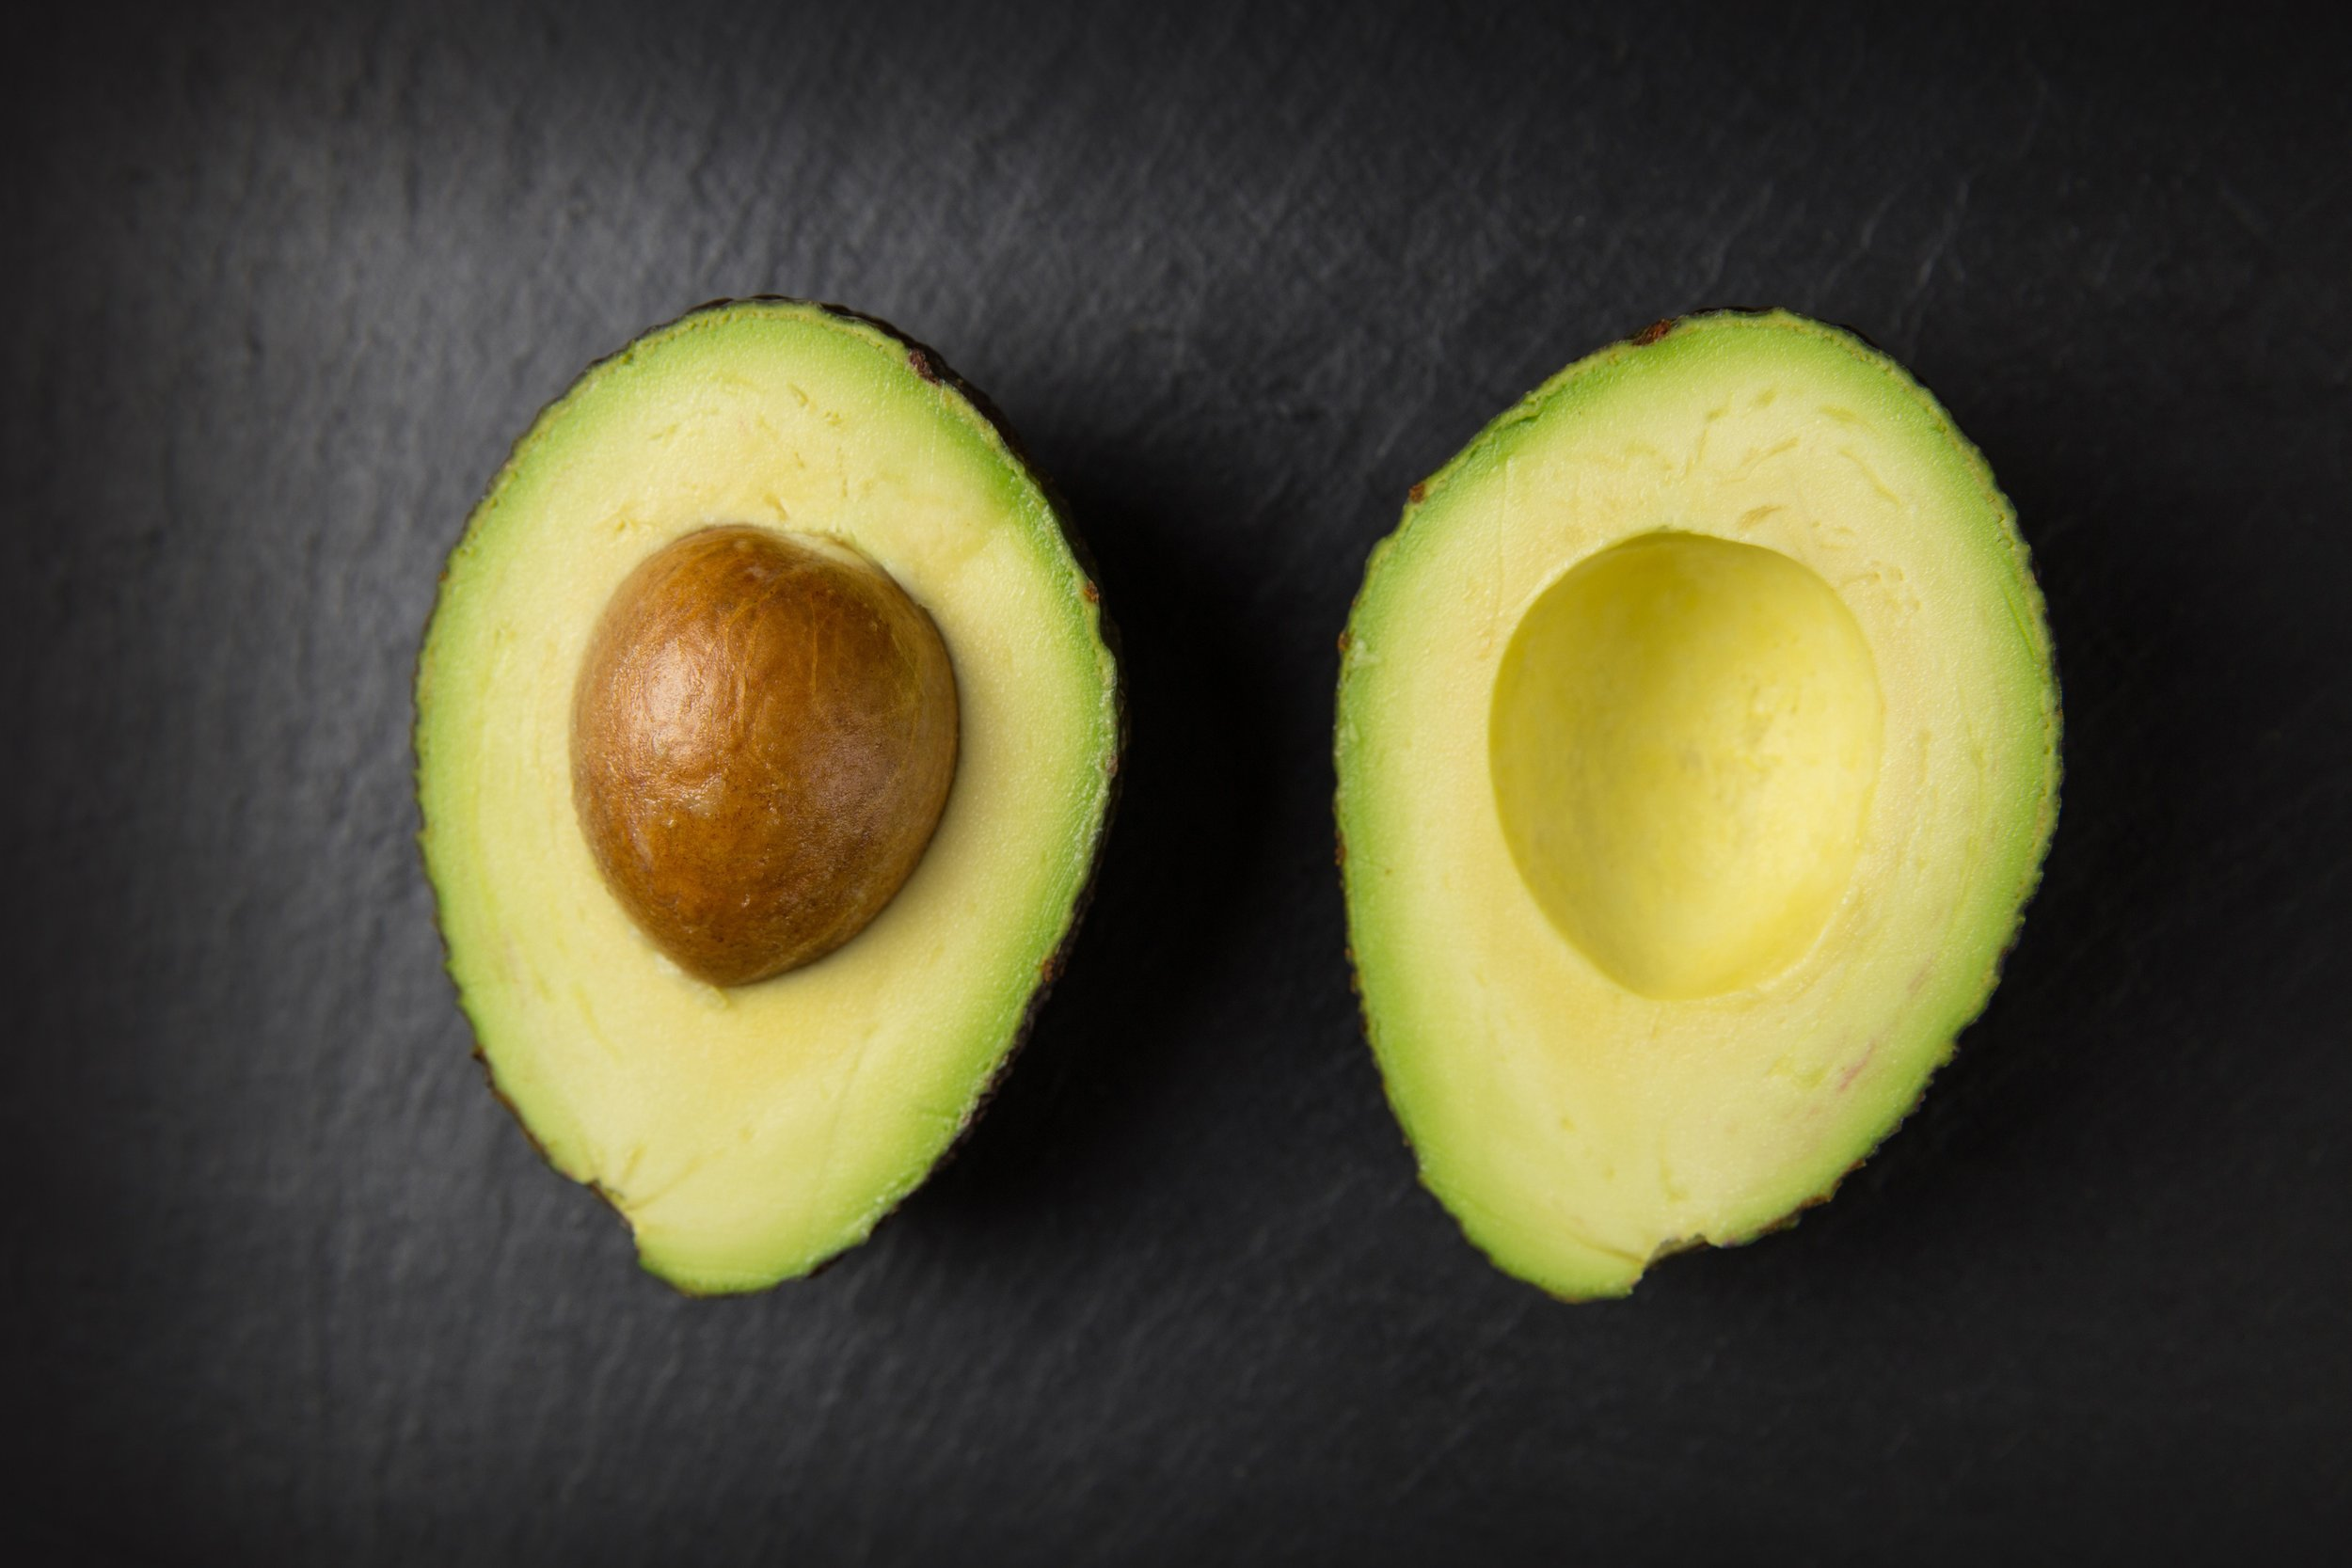 - The Avocado: the international symbol of 'I Keto'